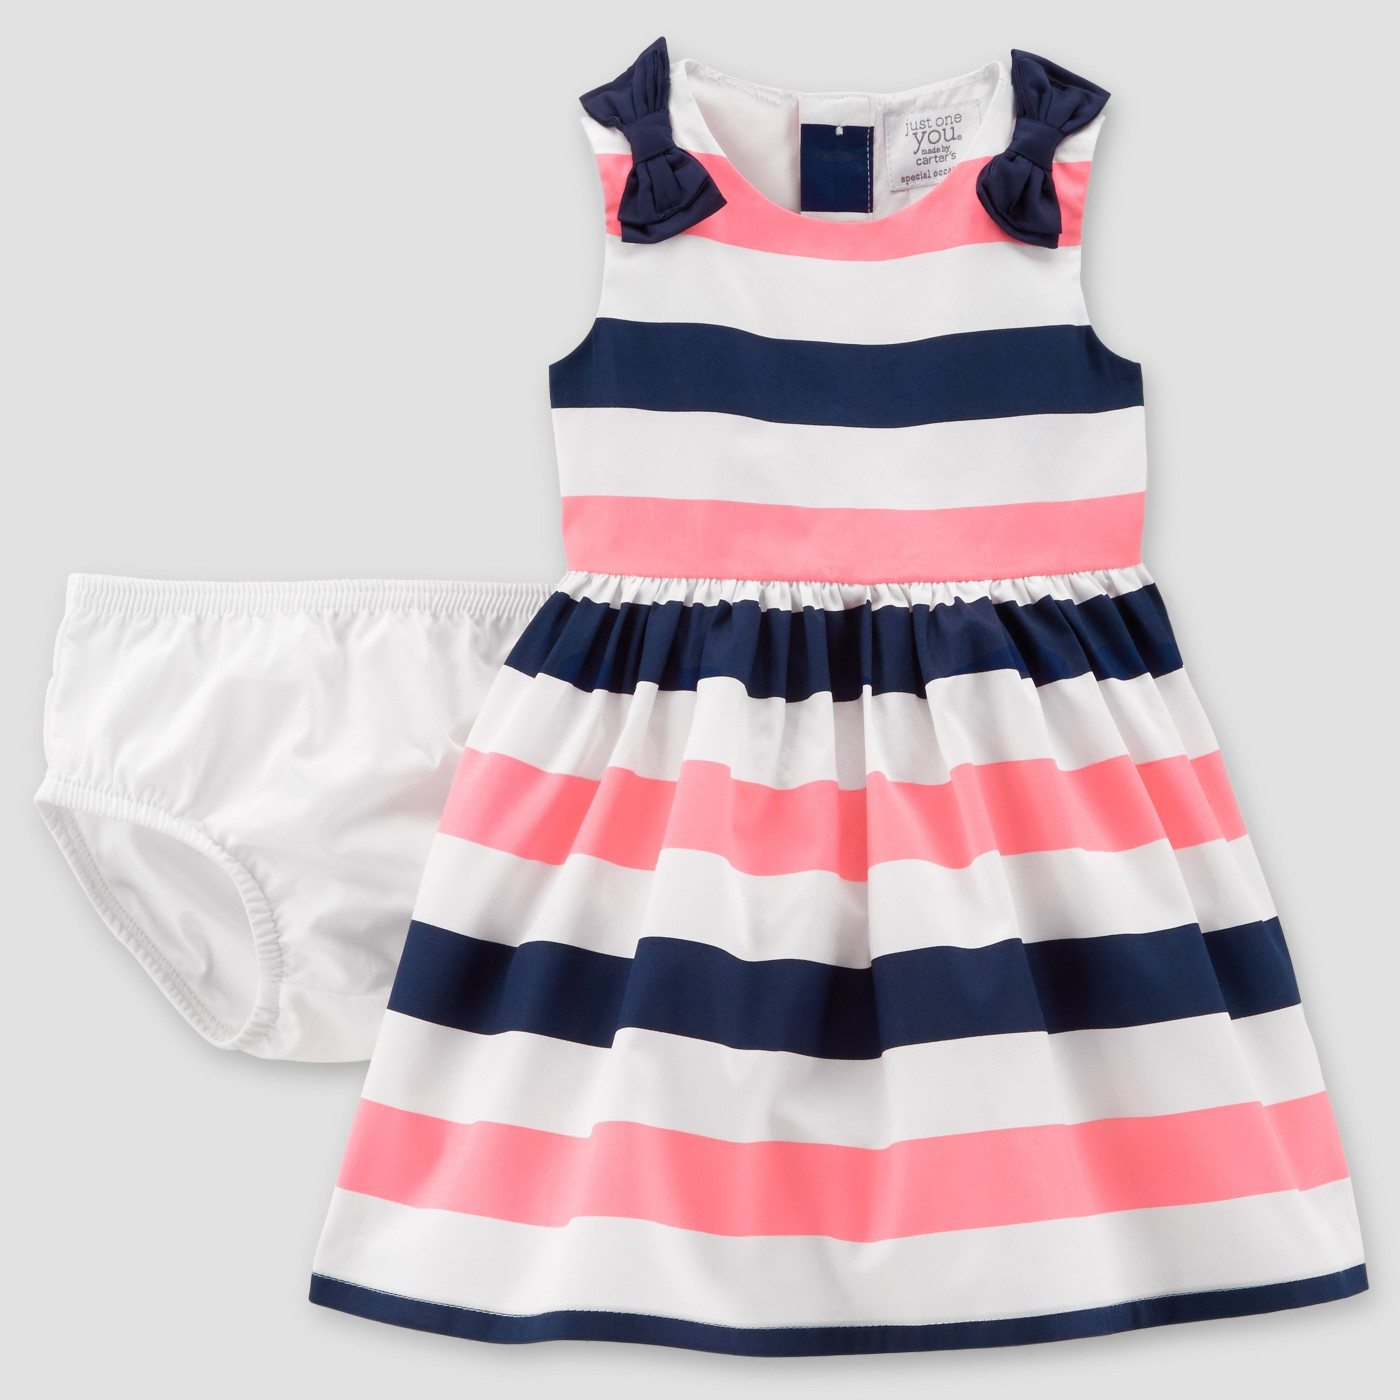 805c5a8cec6d Get Baby Girl Dresses For 50% Off At Target - Simplemost